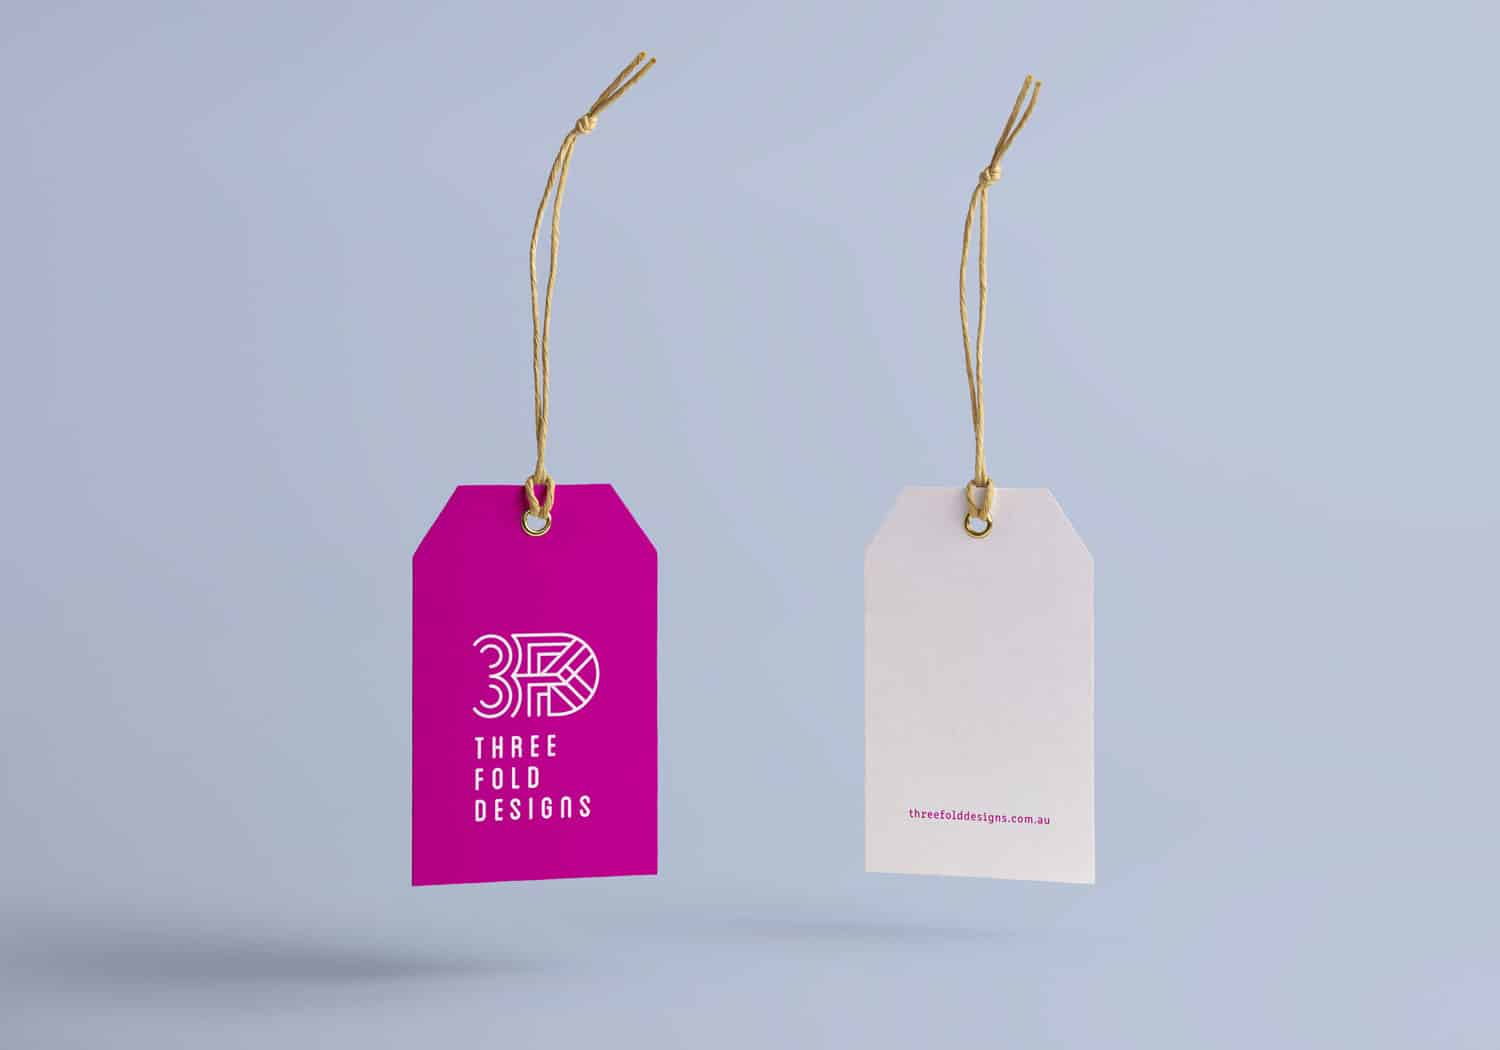 Swing tag design for Threefold Designs by Flux Visual Communication